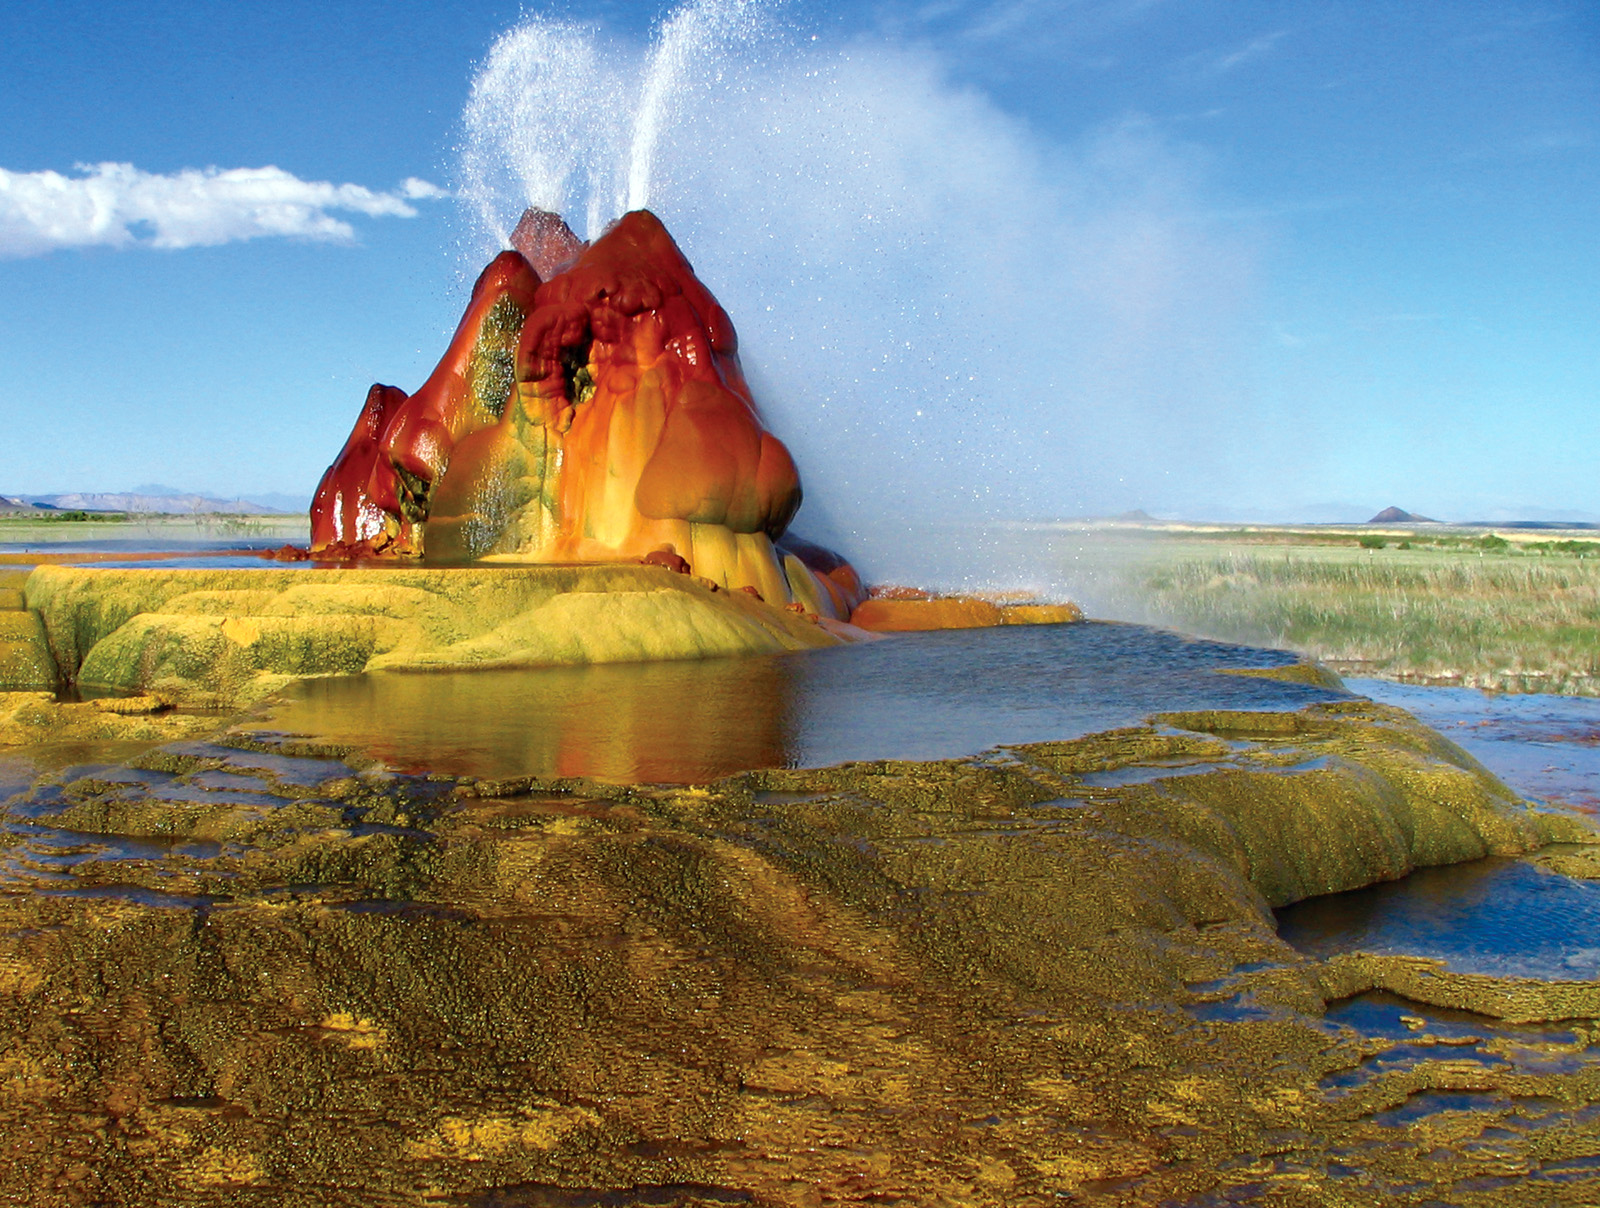 Multicolored Martian Landscape? Nope. Fly Geyser in the Nevada Desert